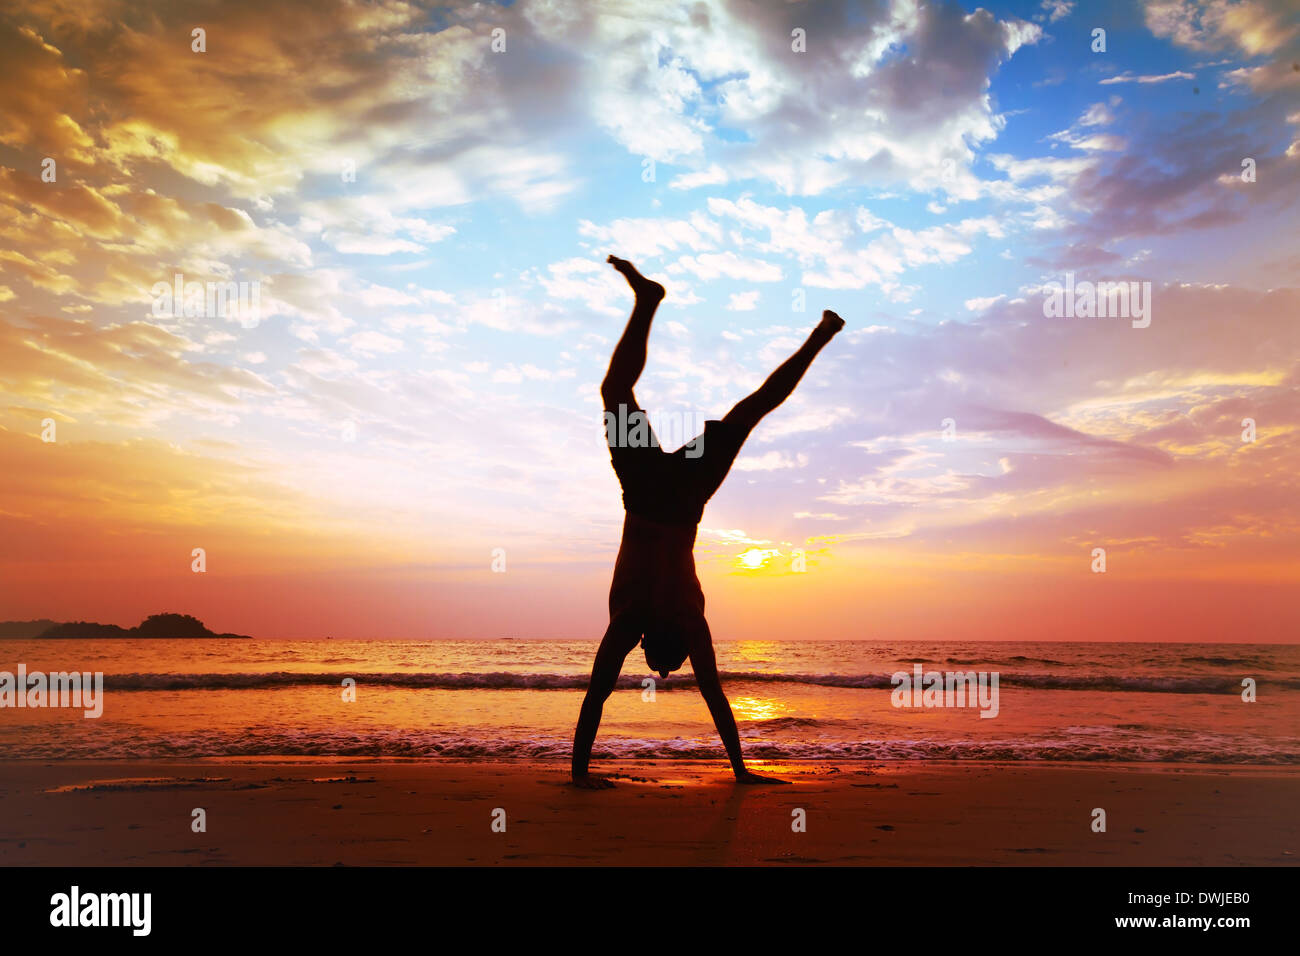 freedom and creativity, man jumping on the beach - Stock Image